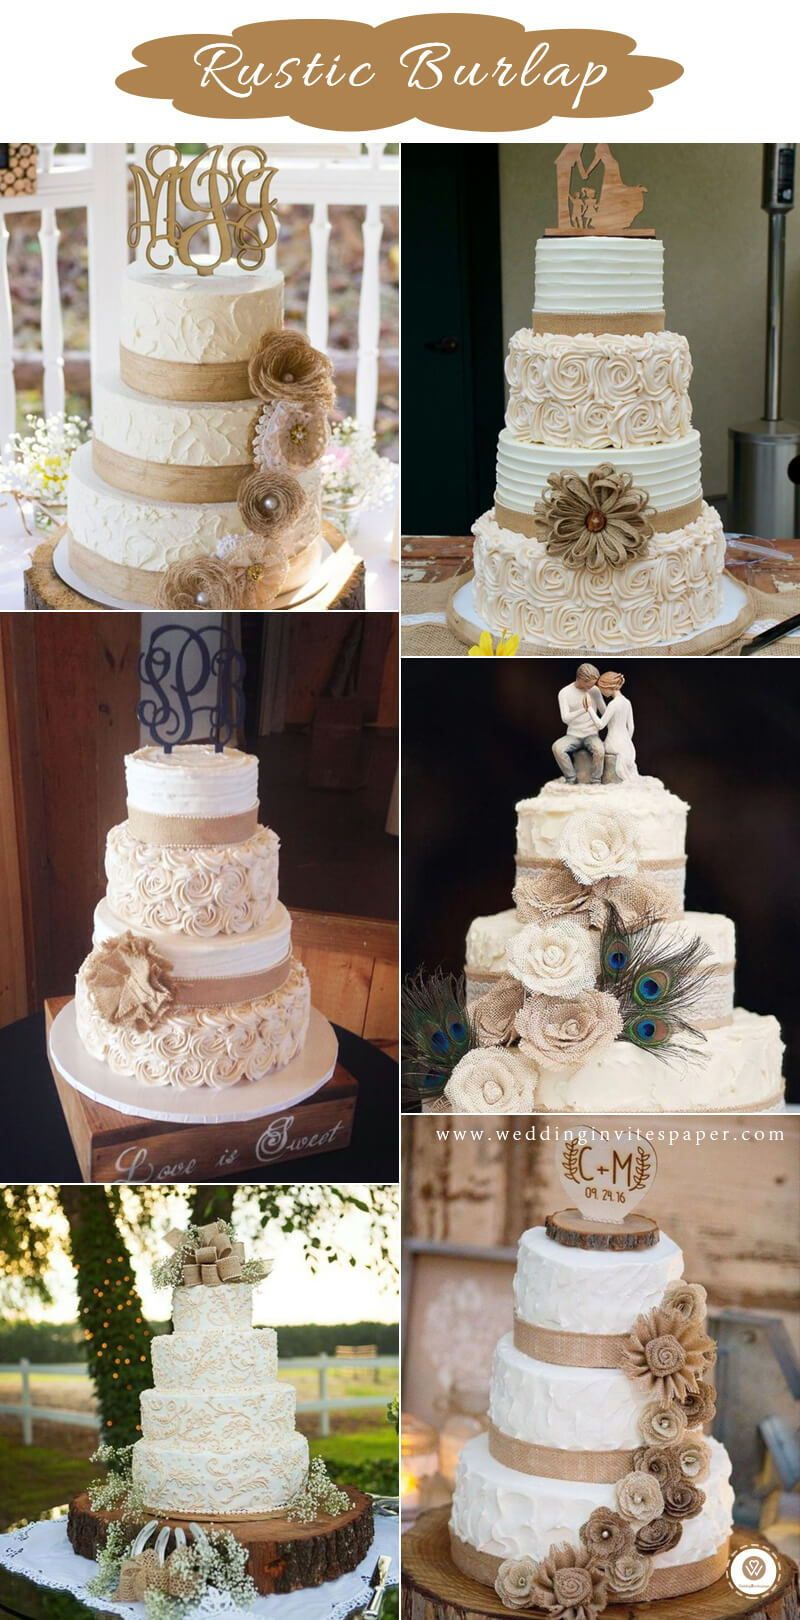 12 Trendiest Ways To Throw Together A Rustic Wedding Cake Wedding Cake With Burlap Country Wedding Cakes Burlap Wedding Cake Rustic Burlap Wedding Cakes